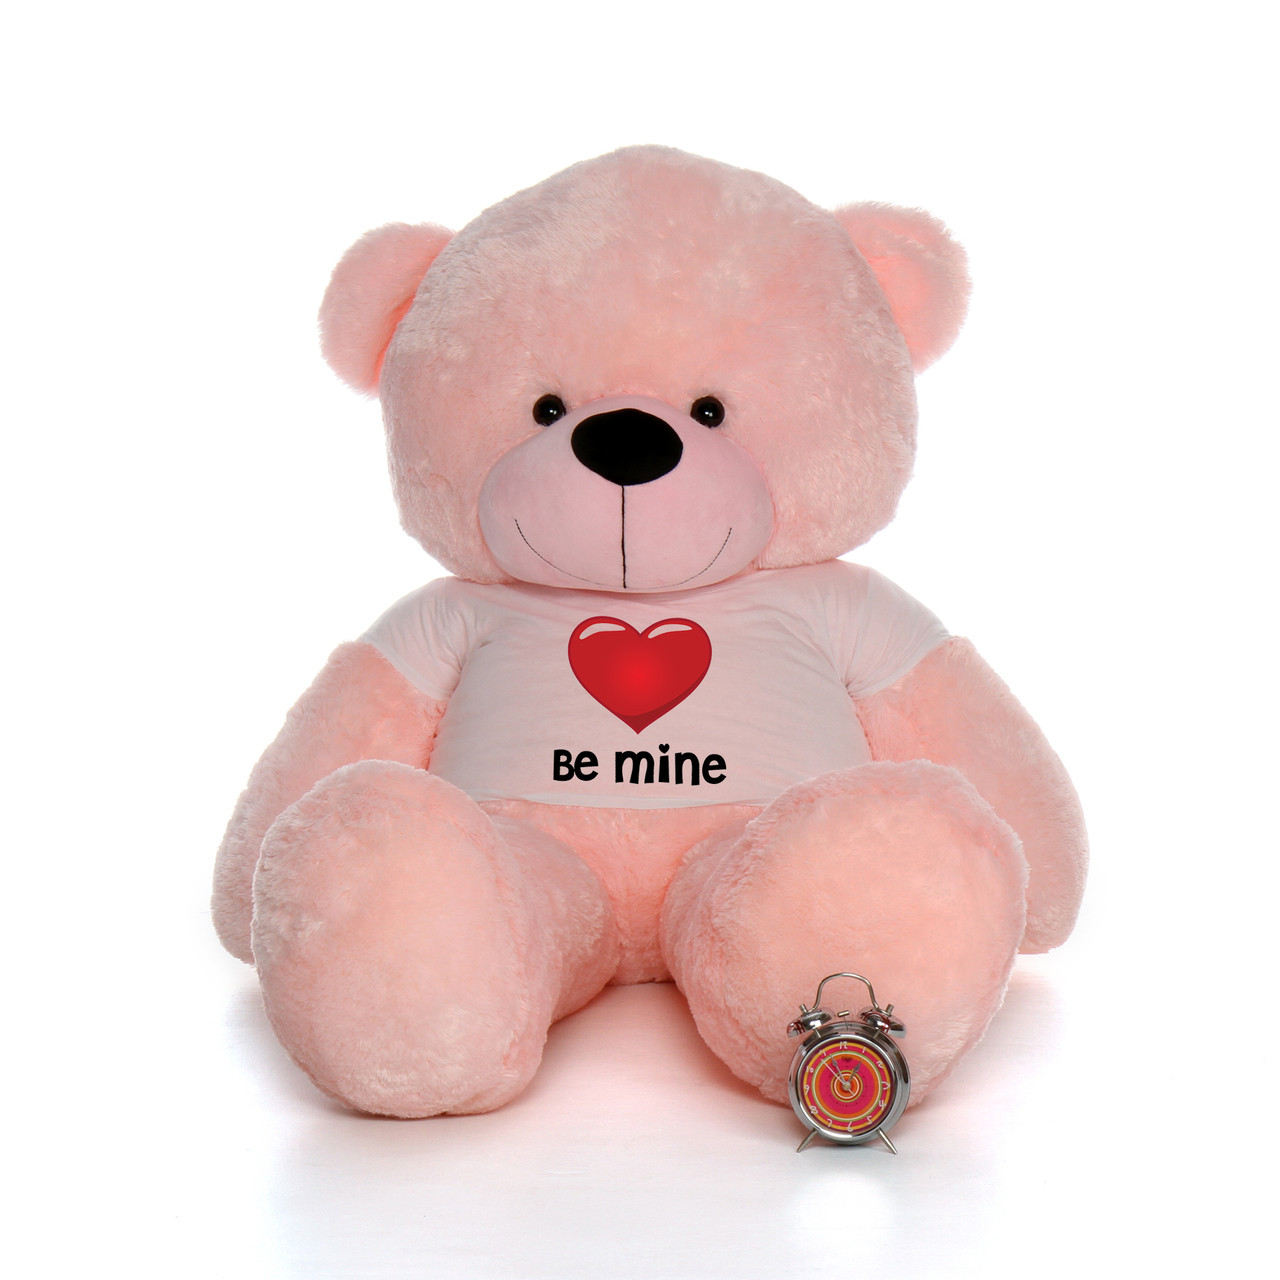 6ft Pink Lady Cuddles by Giant Teddy in Be Mine Valentine's Day T-Shirt